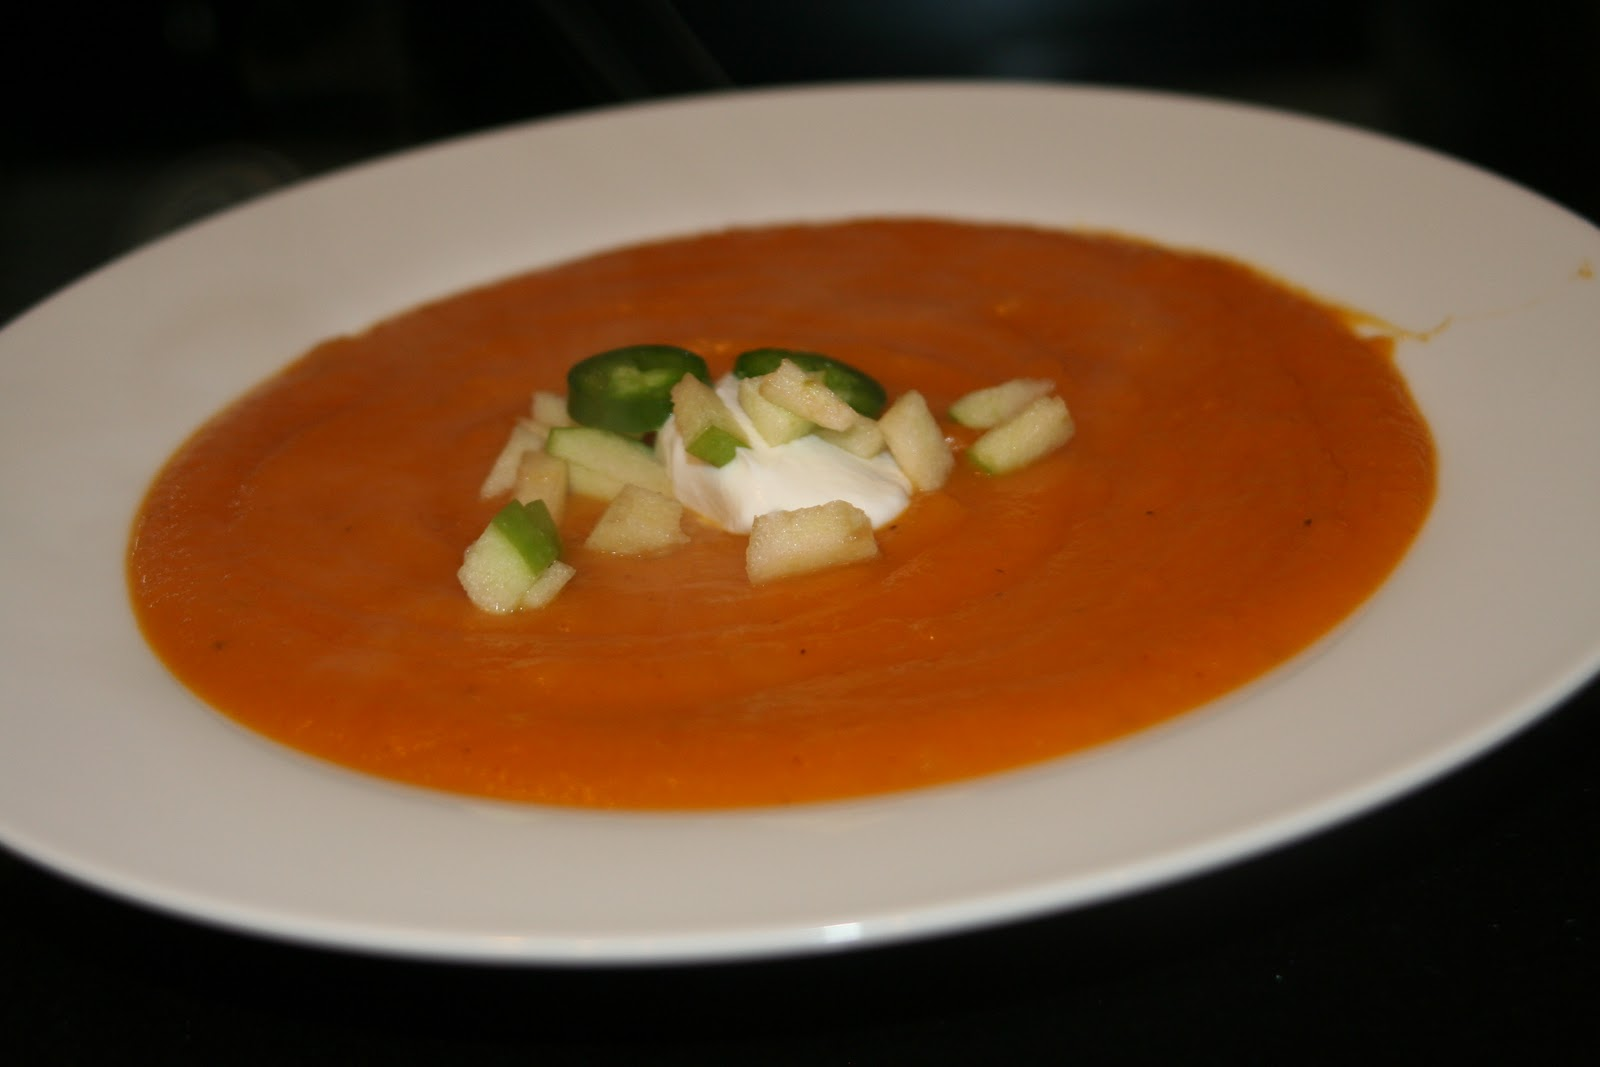 Capital Chef: Apple-Butternut Squash Soup